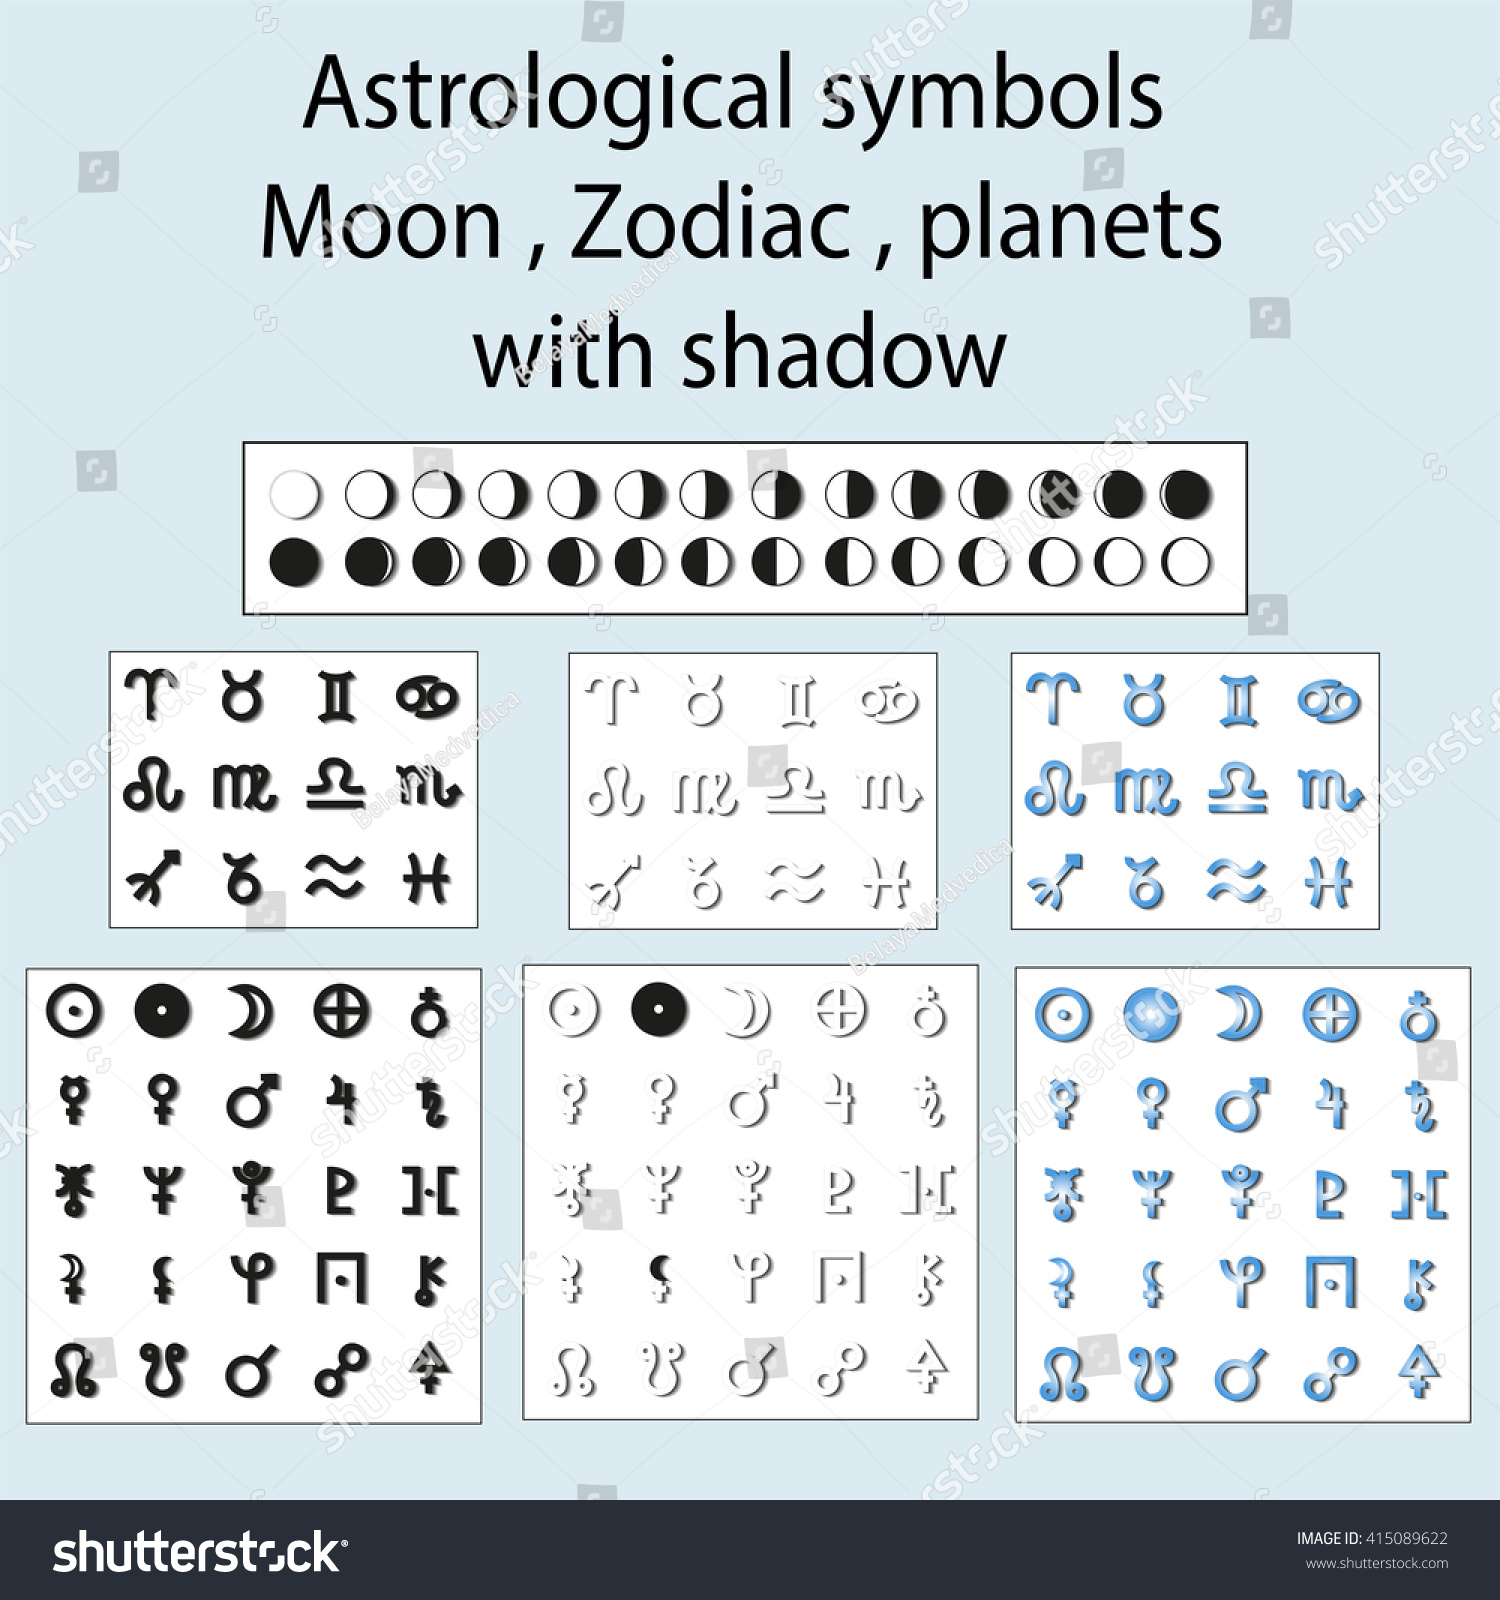 Astrological Symbols Moon Planets Zodiac Shadow Stock Illustration